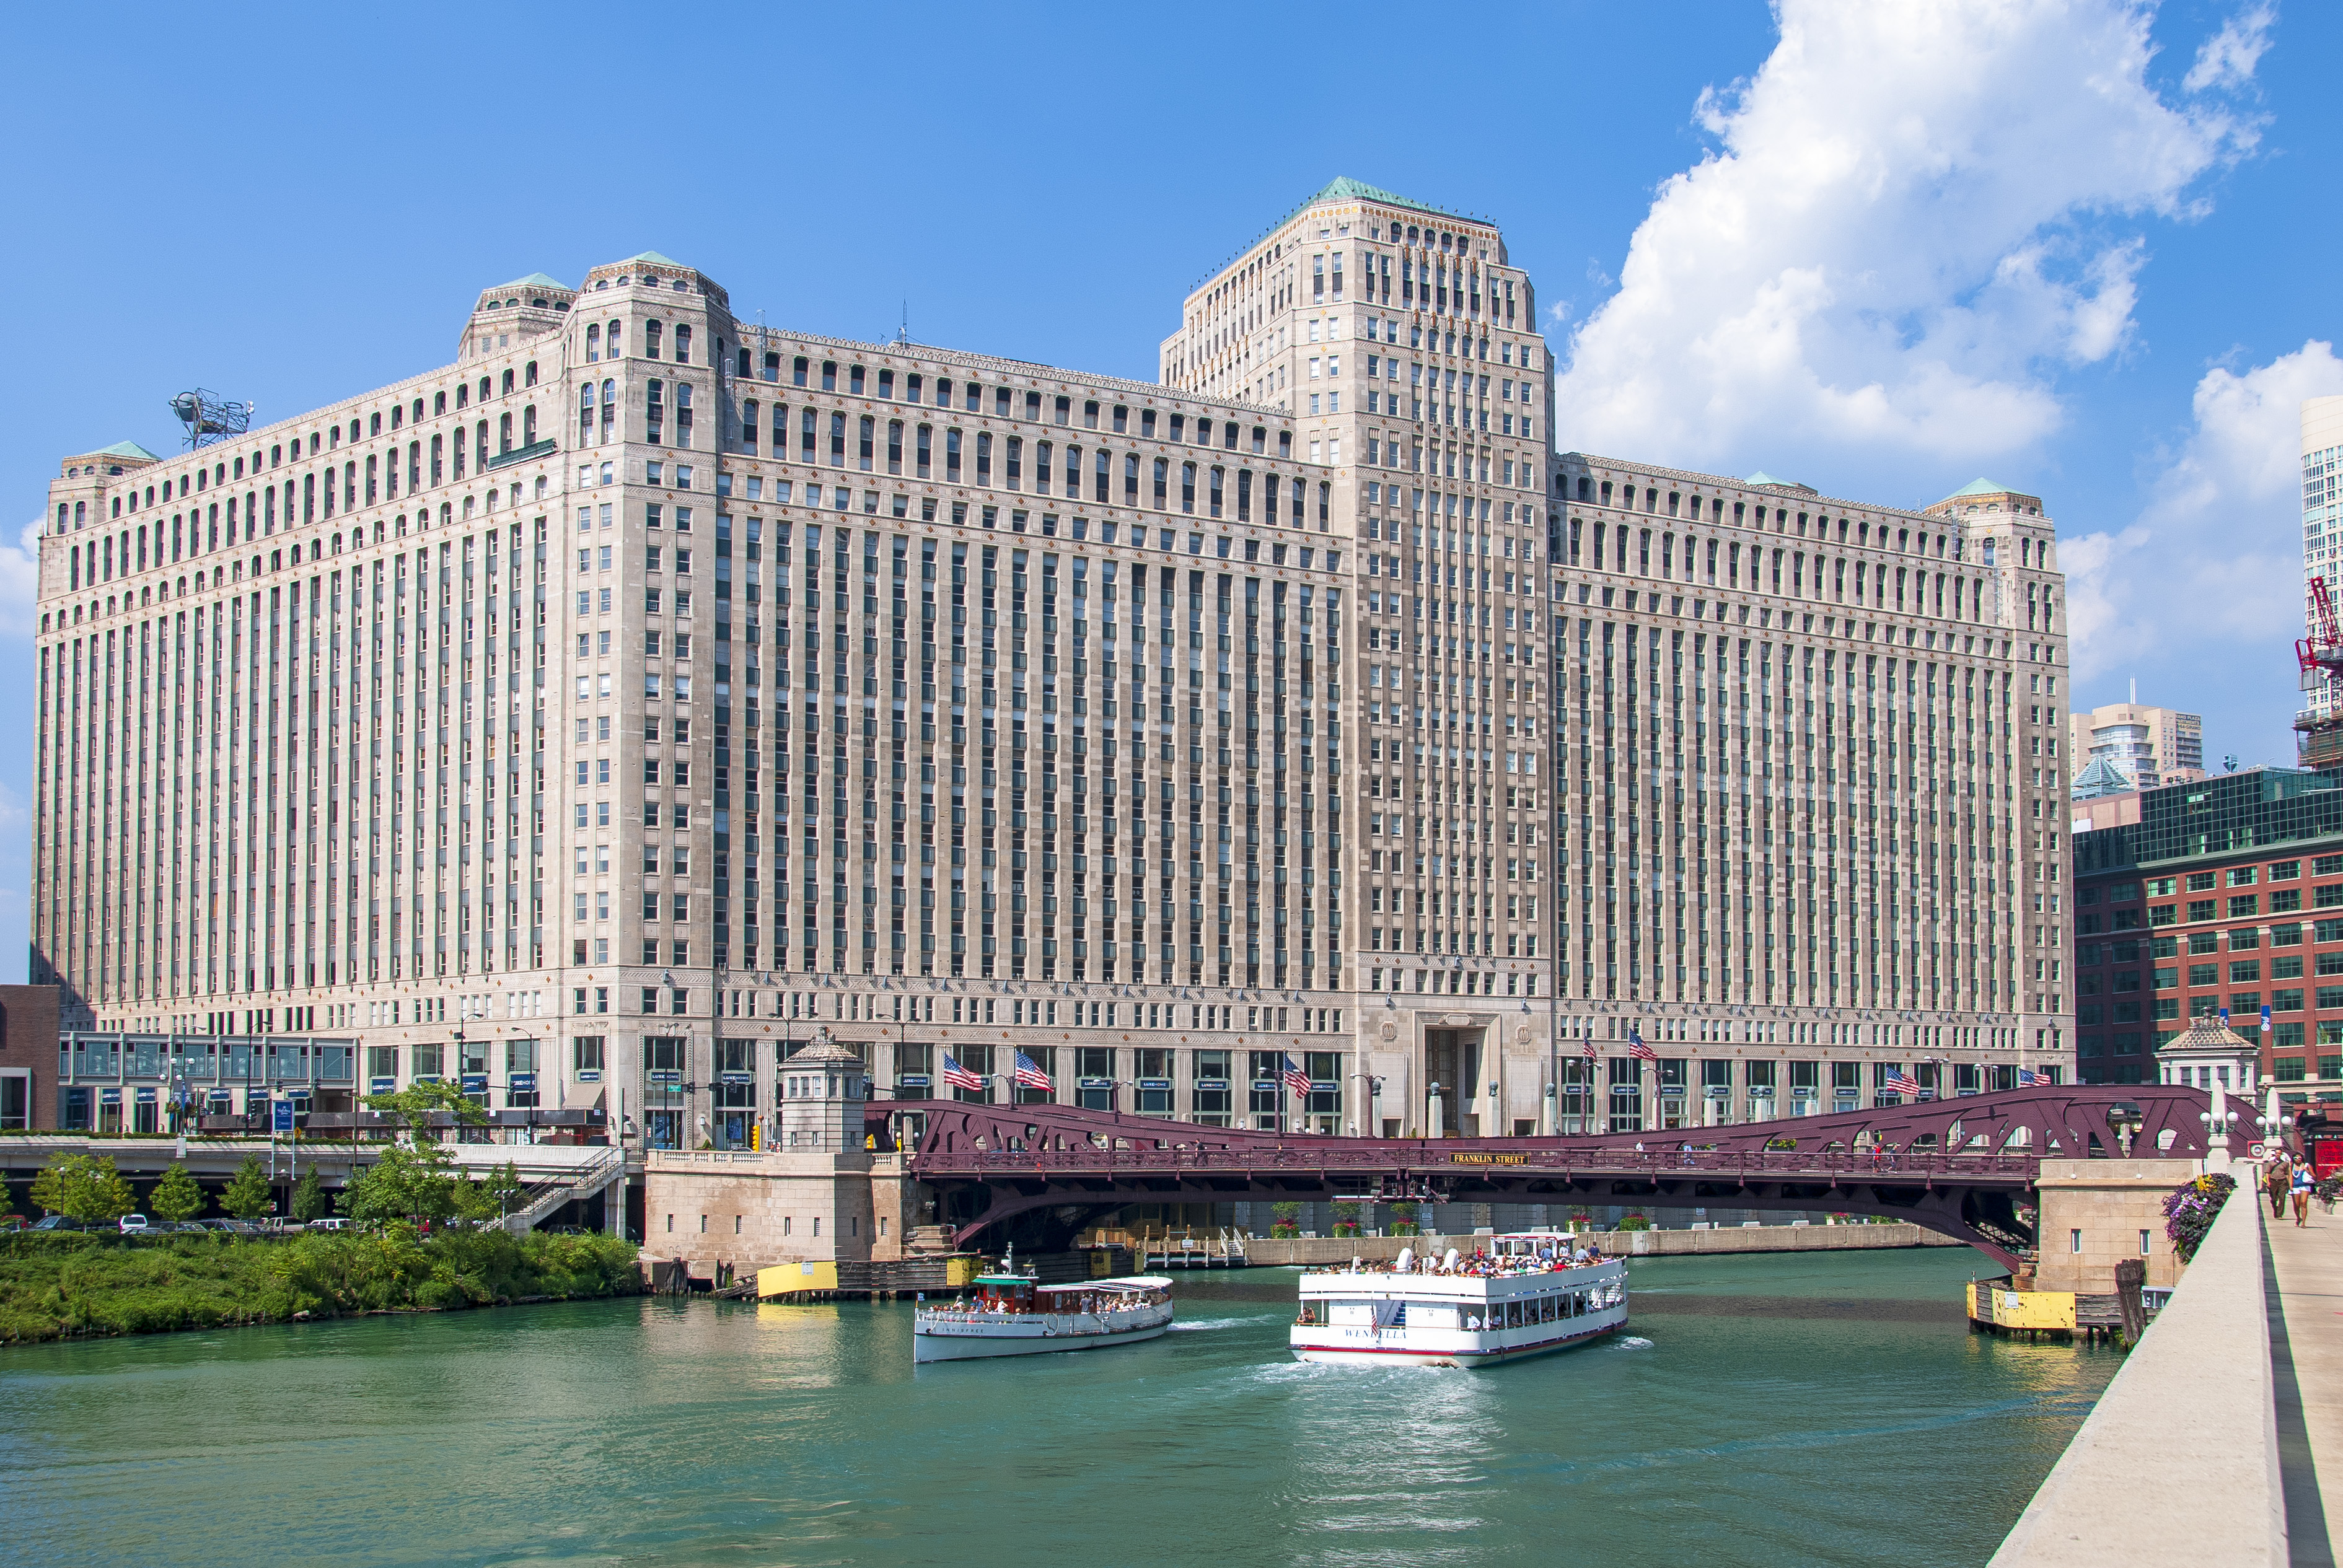 The Merchandise Mart Chicago